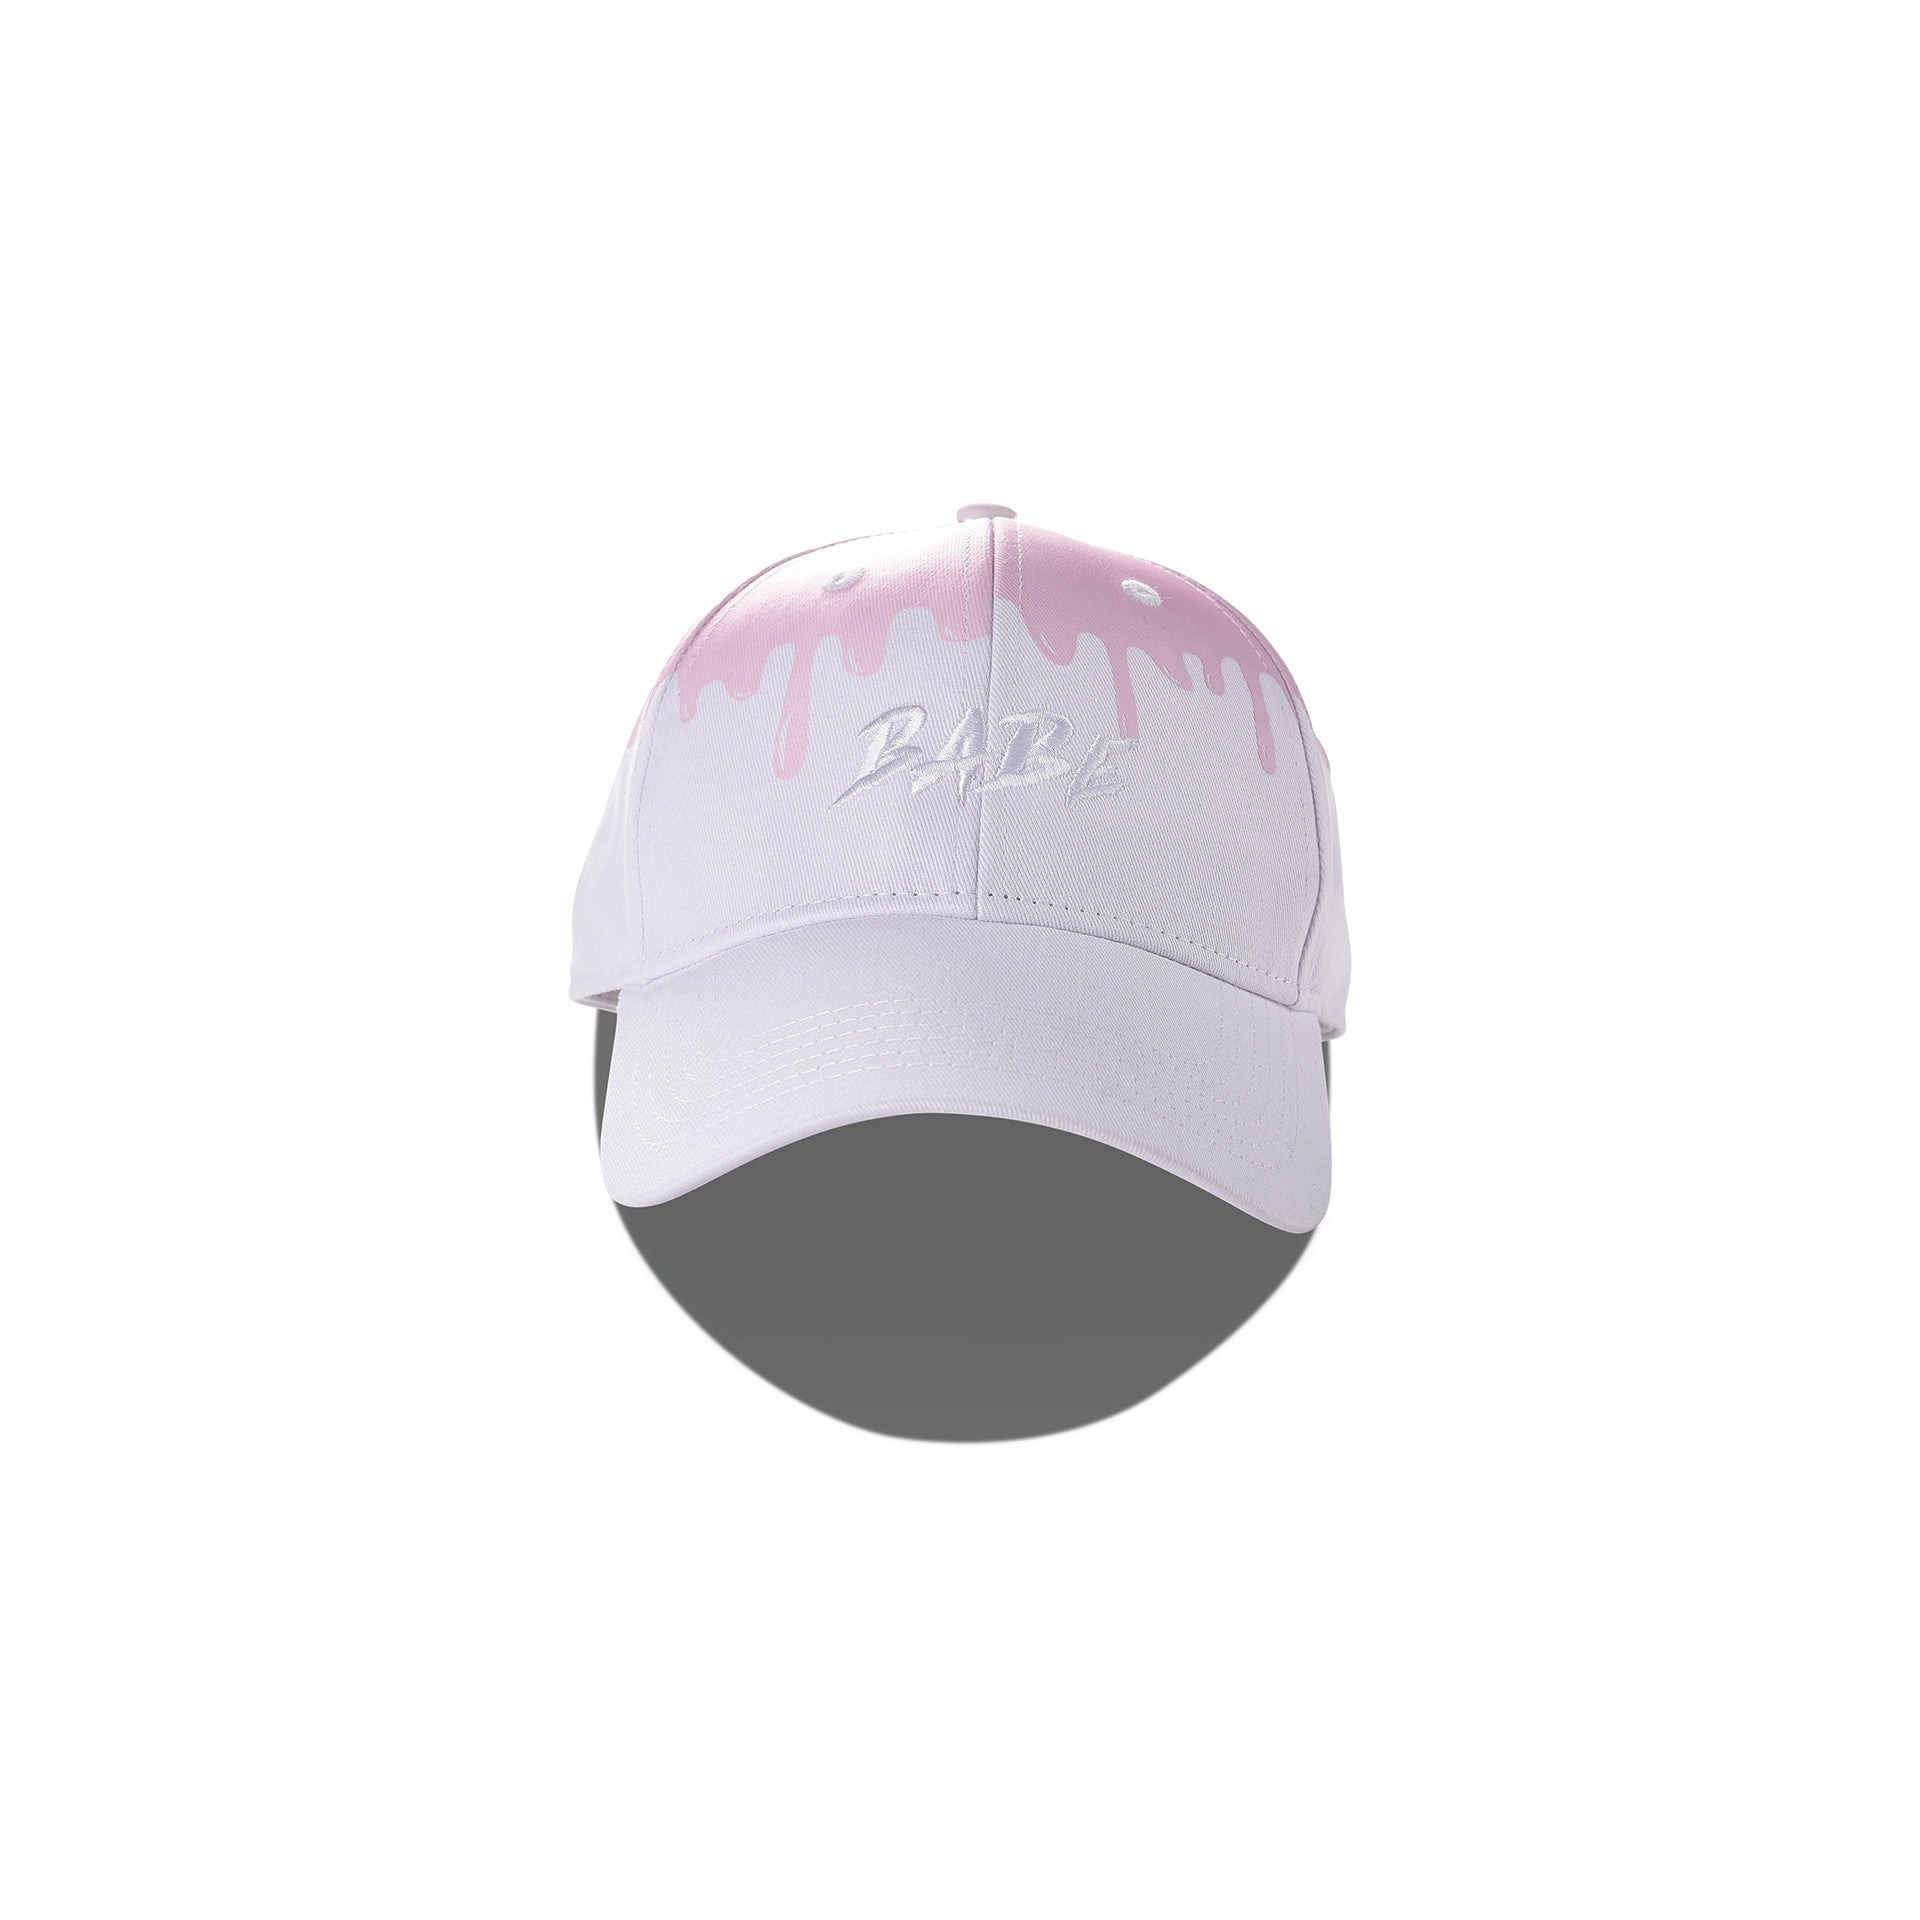 Luna Blanche Front of Mood Babe Cap Under UV Light